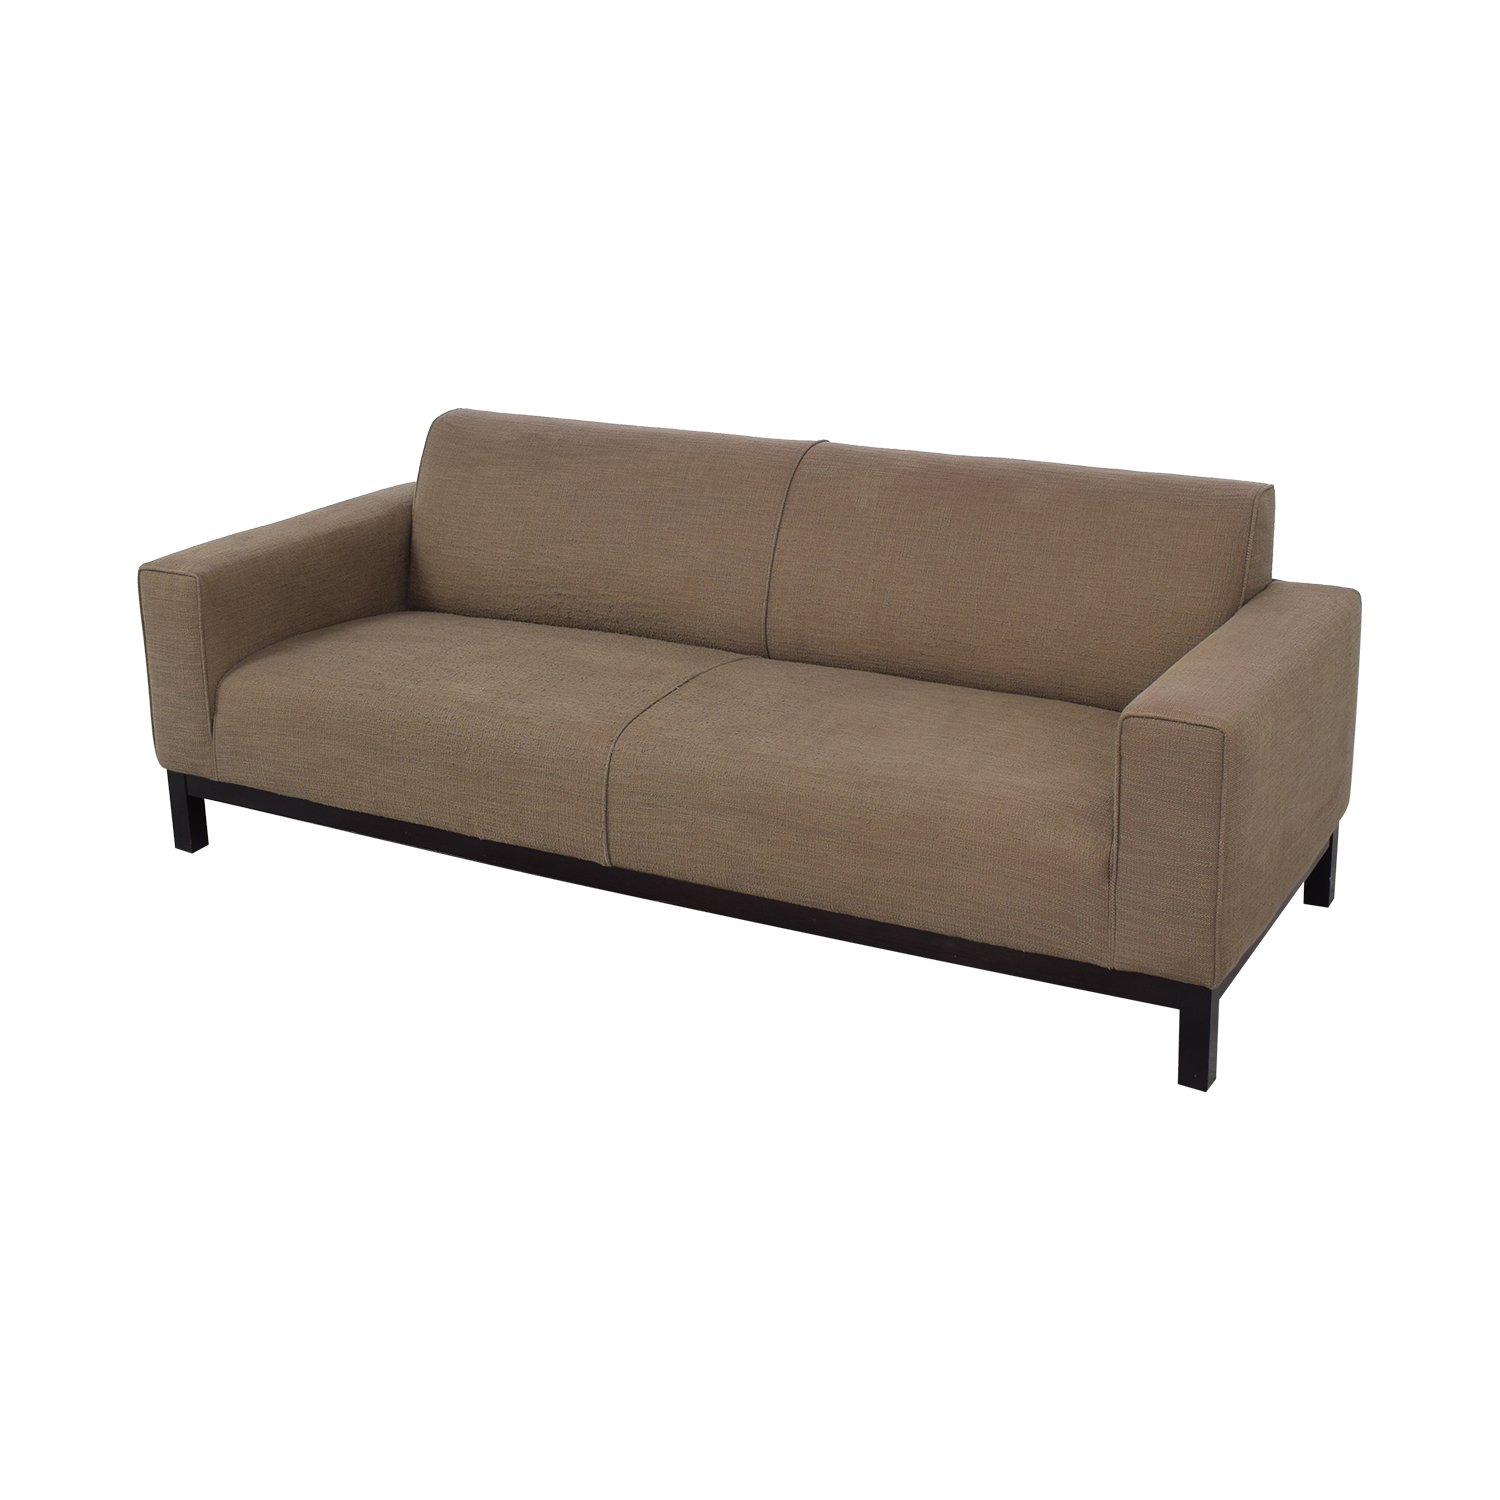 Crate & Barrel Tight Back Sofa / Sofas